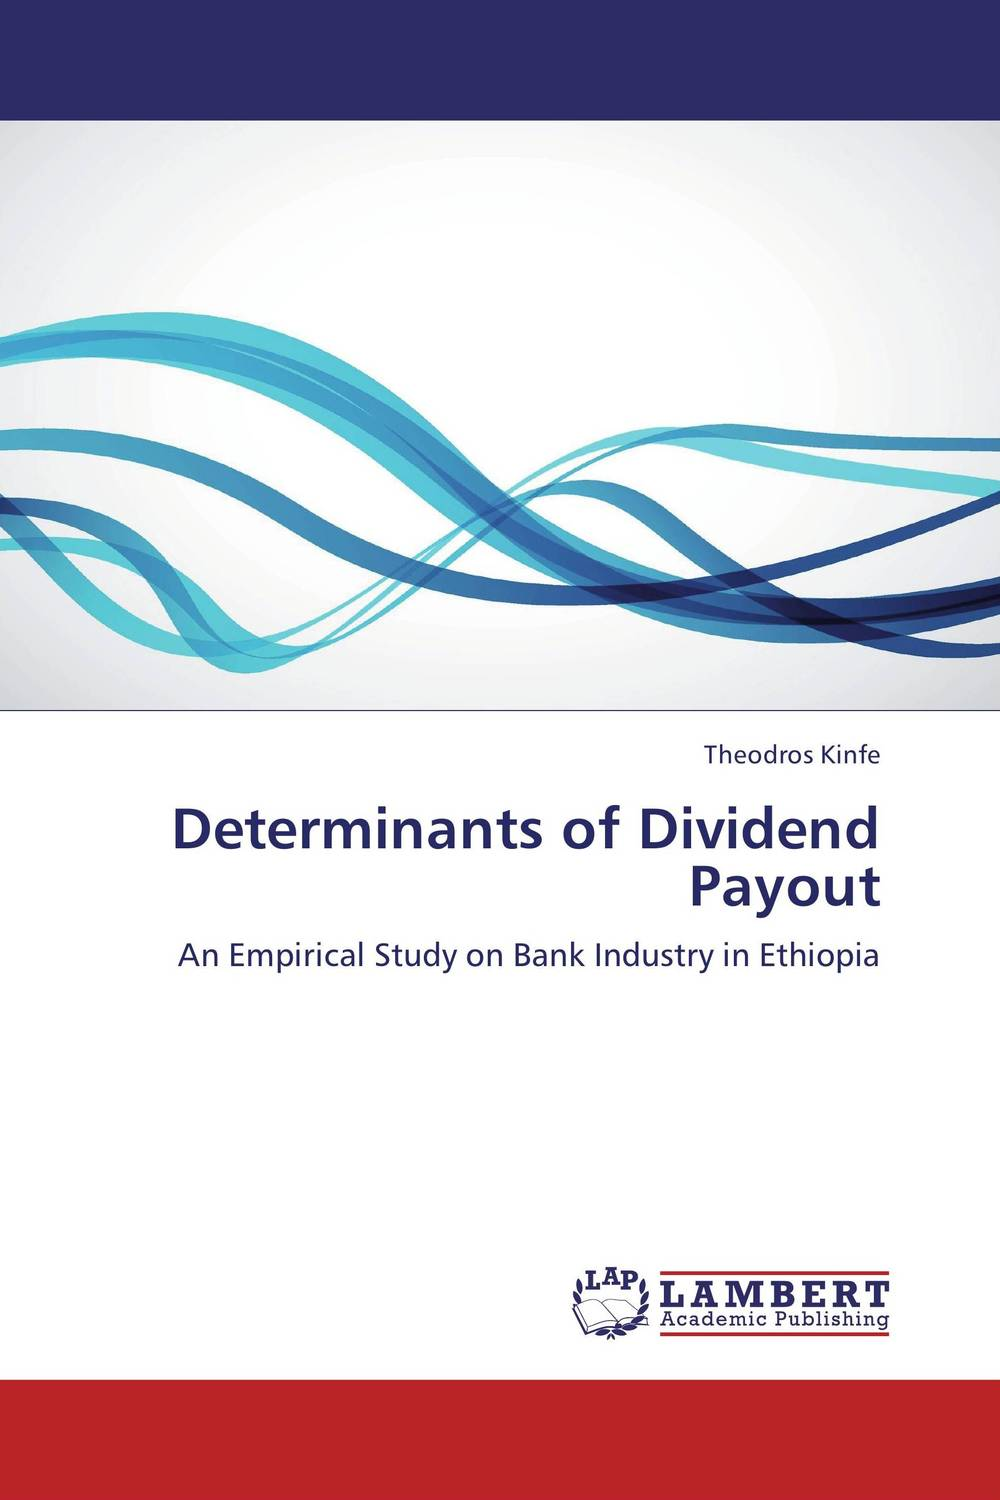 Determinants of Dividend Payout sujata kapoor dividend policy and its impact on shareholders wealth